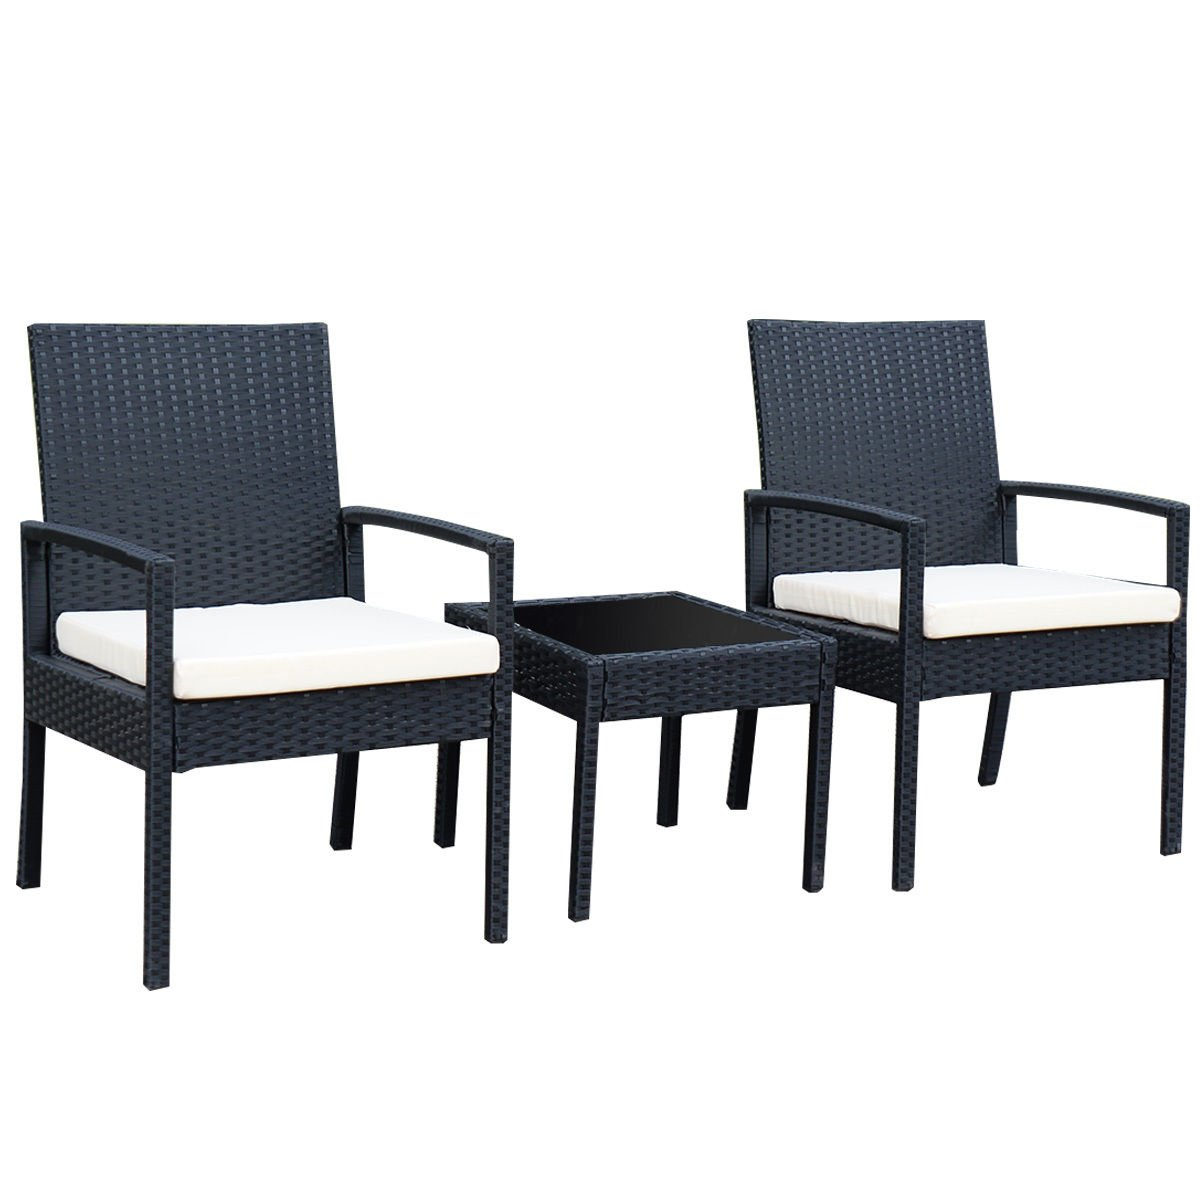 Amazon.com  Tangkula 3 Piece Patio Furniture Set Wicker Rattan Outdoor Patio Conversation Set with 2 Cushioned Chairs \u0026 End Table Backyard Garden Lawn Chat ...  sc 1 st  Amazon.com & Amazon.com : Tangkula 3 Piece Patio Furniture Set Wicker Rattan ...